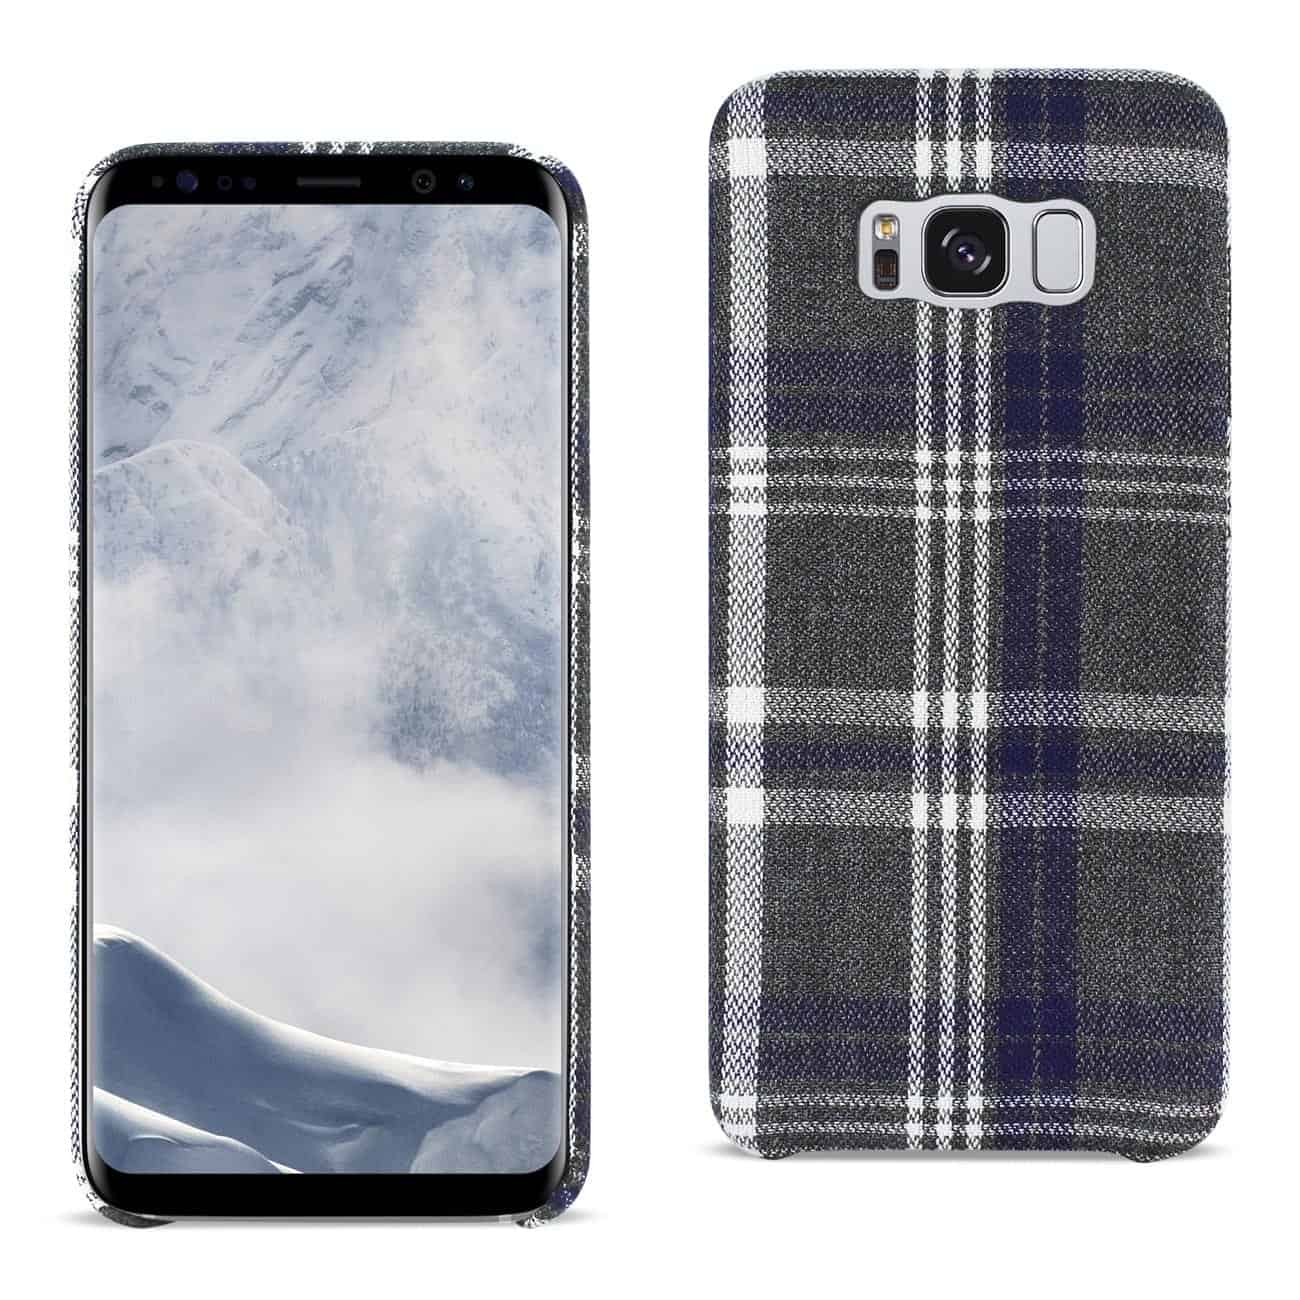 Samsung Galaxy S8 Edge Checked Fabric In Black